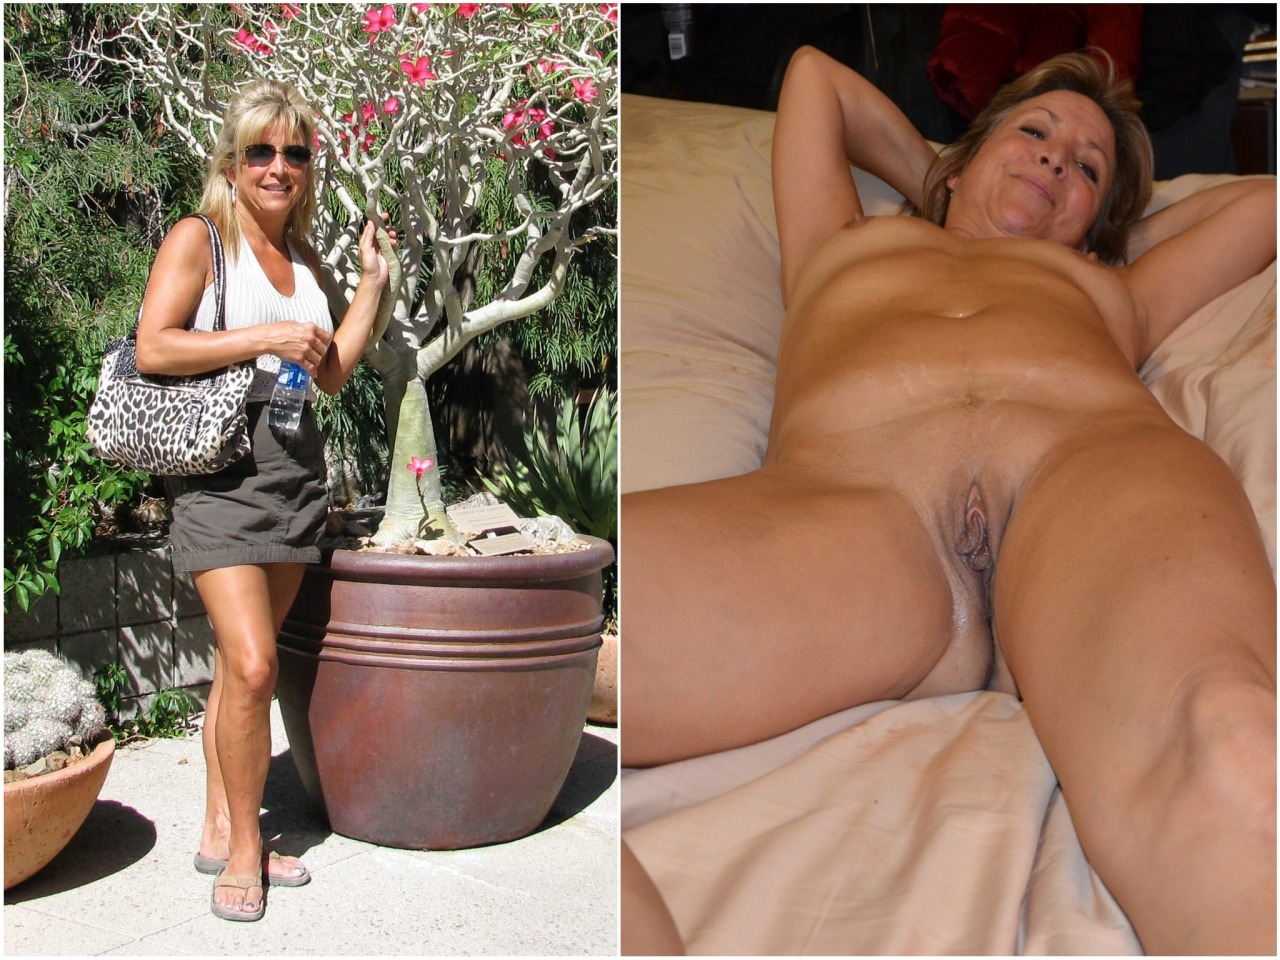 maman nue en photo sexe  042